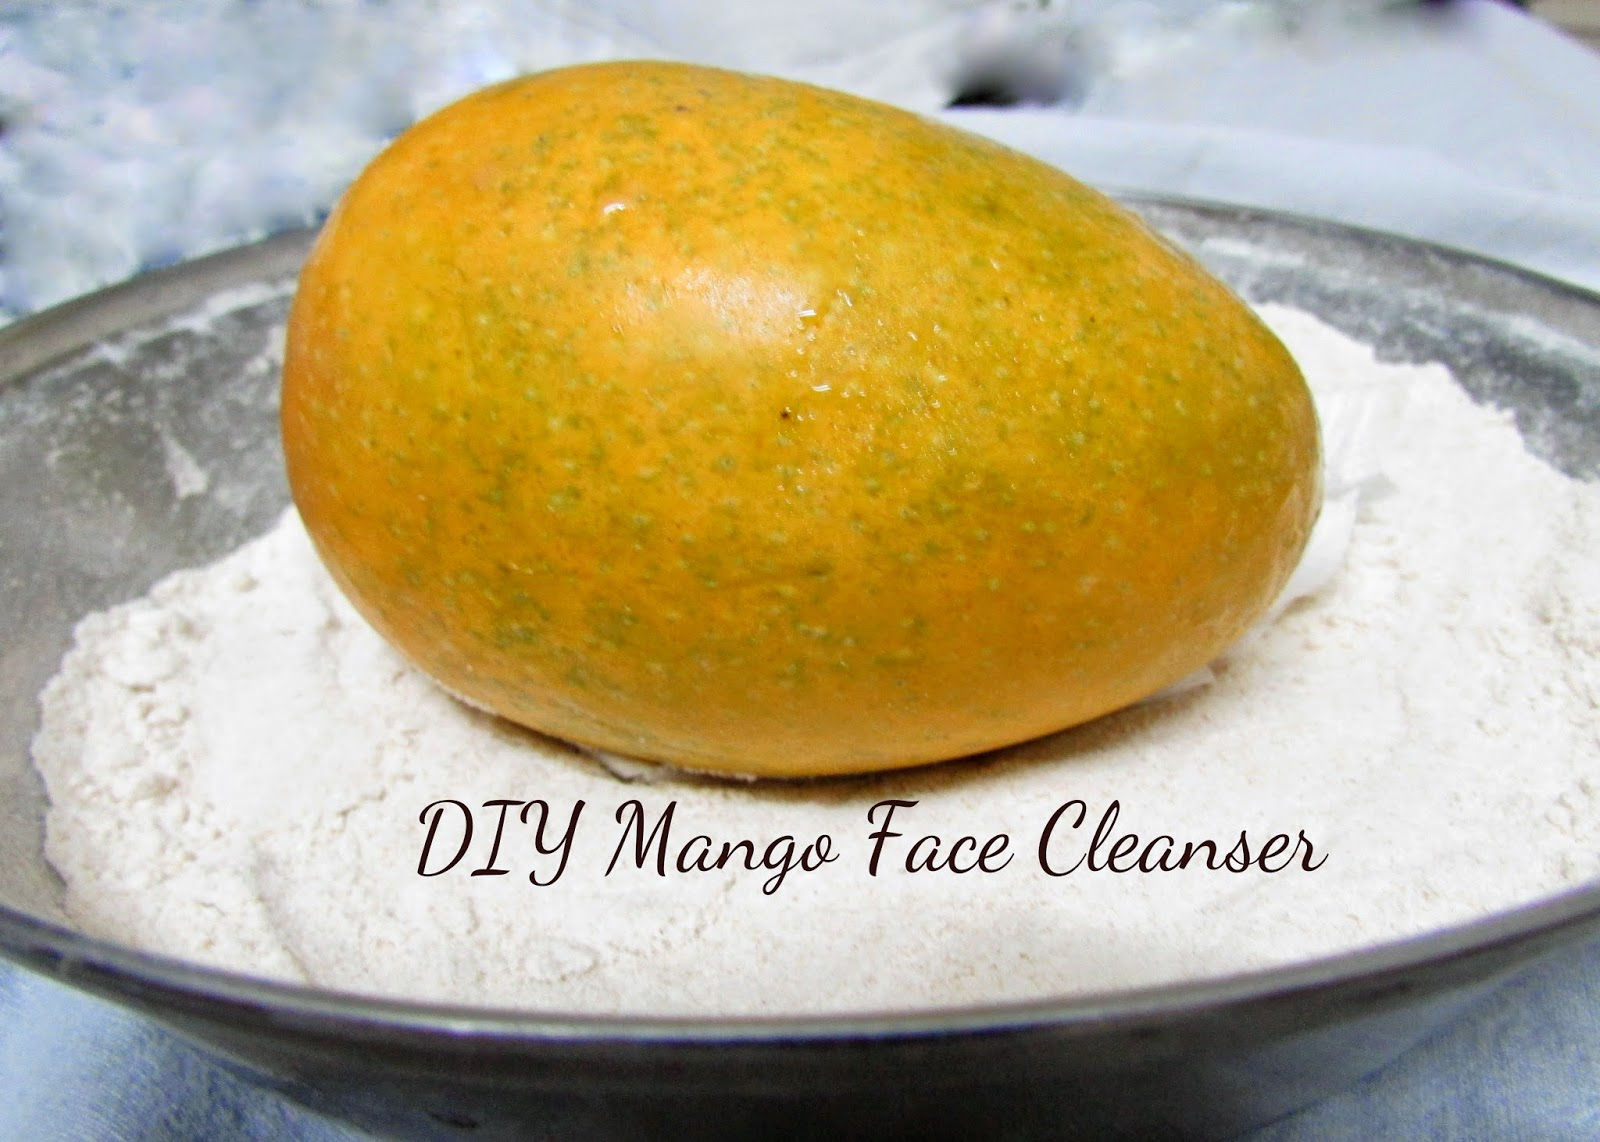 face pack , pack , mango , mango pack , mago gace pack , benifits of mango , skin benifits of mango , hair benifits of mango , DIY , DIY cleanser , clean , cleanser recire , how to make face wash , how to make face pack , how to make face cleanser, mango revipies , how to use mango for skin , how to use mango for hair , how to use mango for as face back , how to make mango face pack